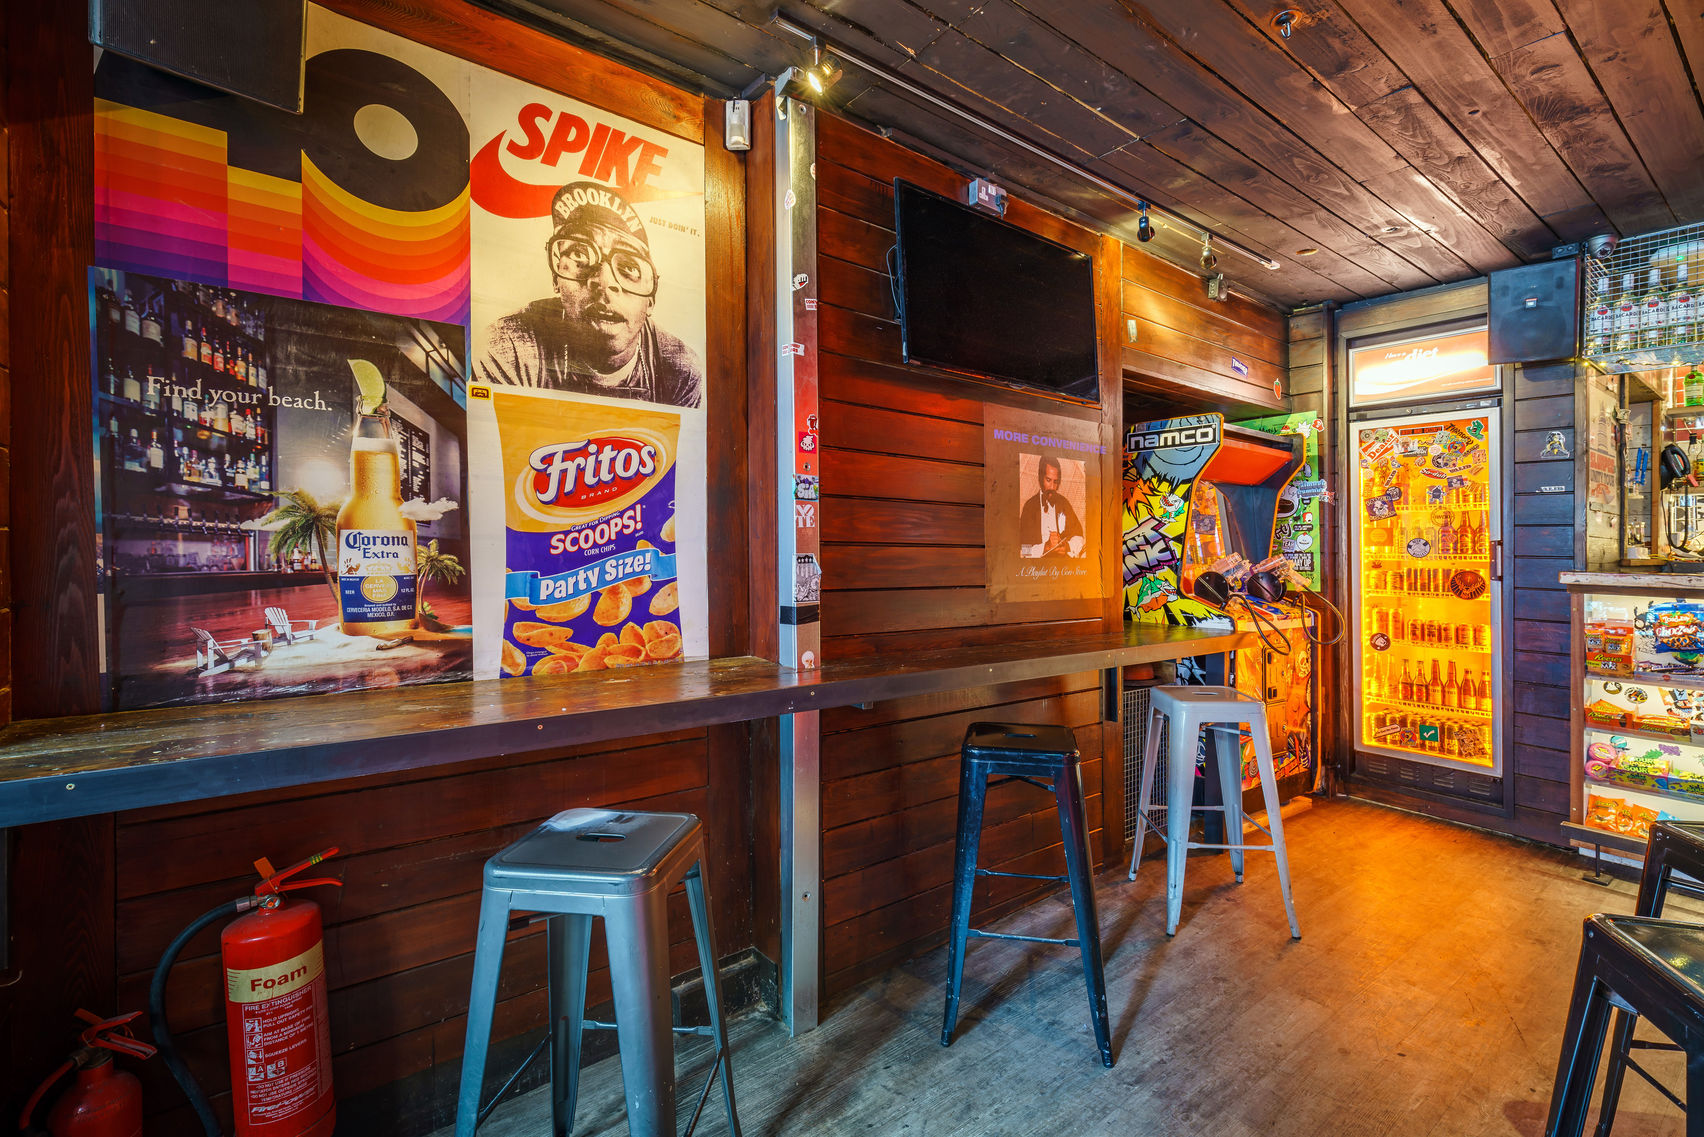 A mock-up convenience store which is actually a Northern quarter bar